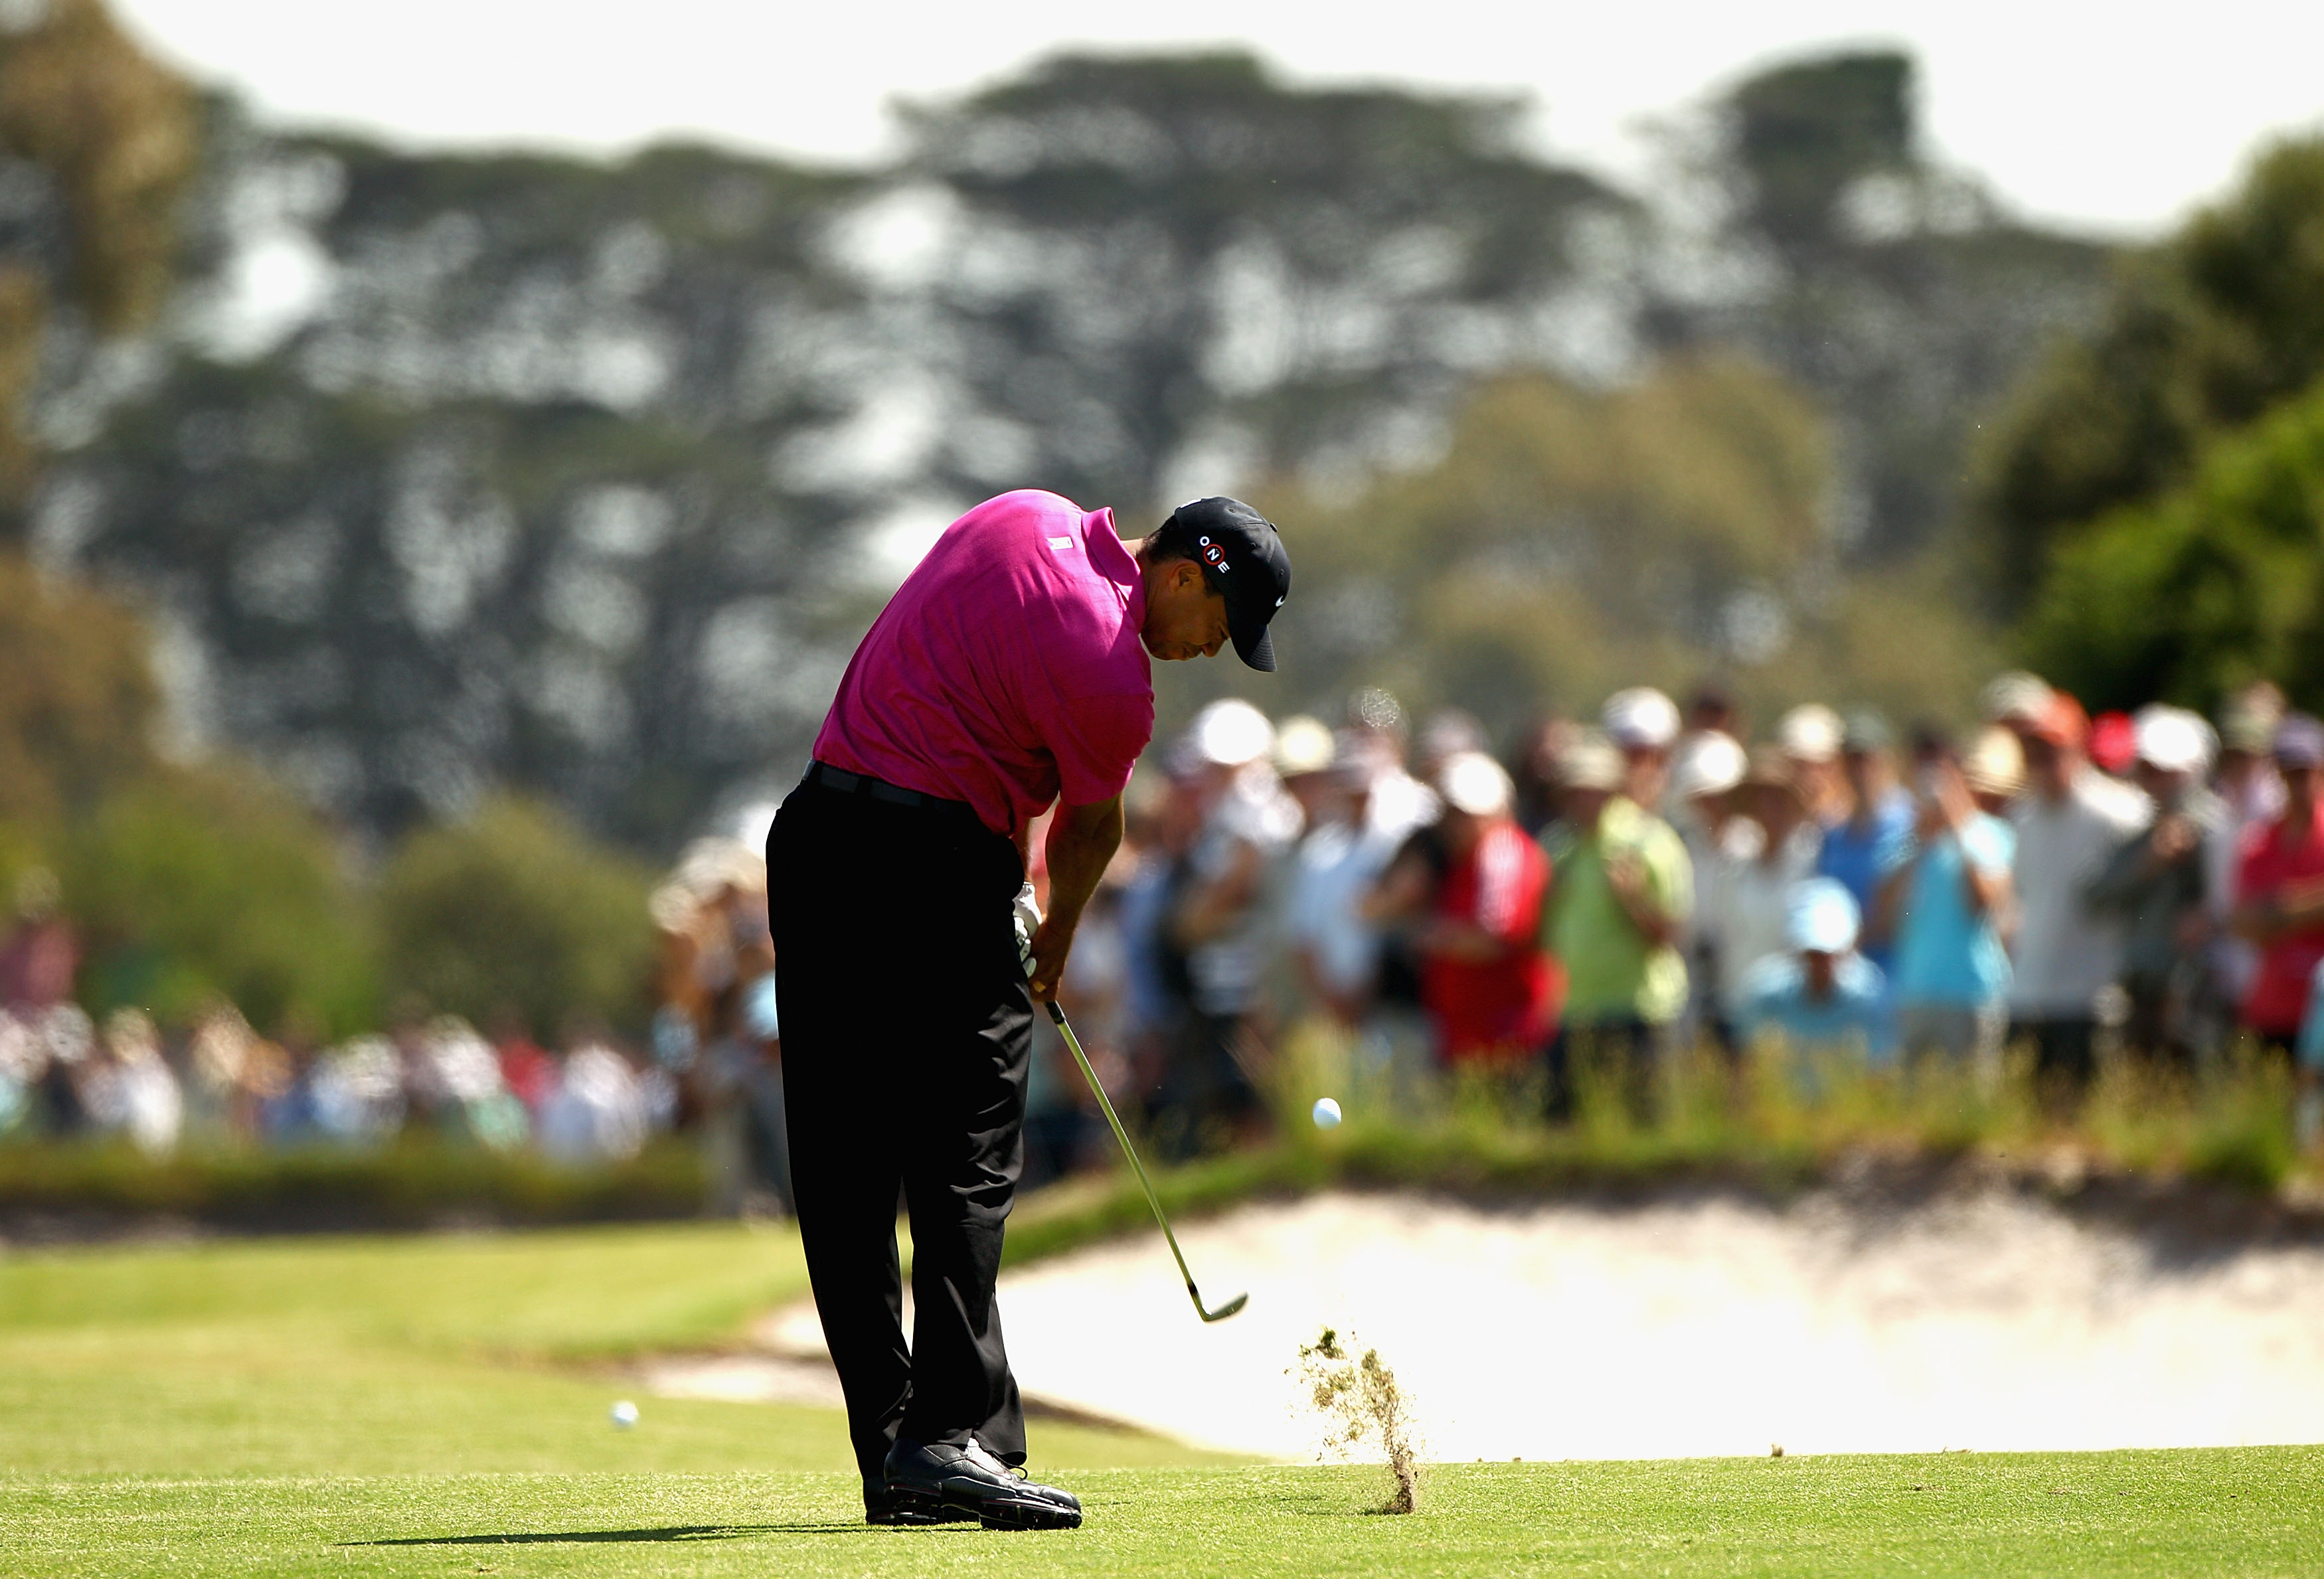 MELBOURNE, AUSTRALIA - NOVEMBER 11:  Tiger Woods of the USA plays an iron shot during day one of the Australian Masters at The Victoria Golf Club on November 11, 2010 in Melbourne, Australia.  (Photo by Ryan Pierse/Getty Images)